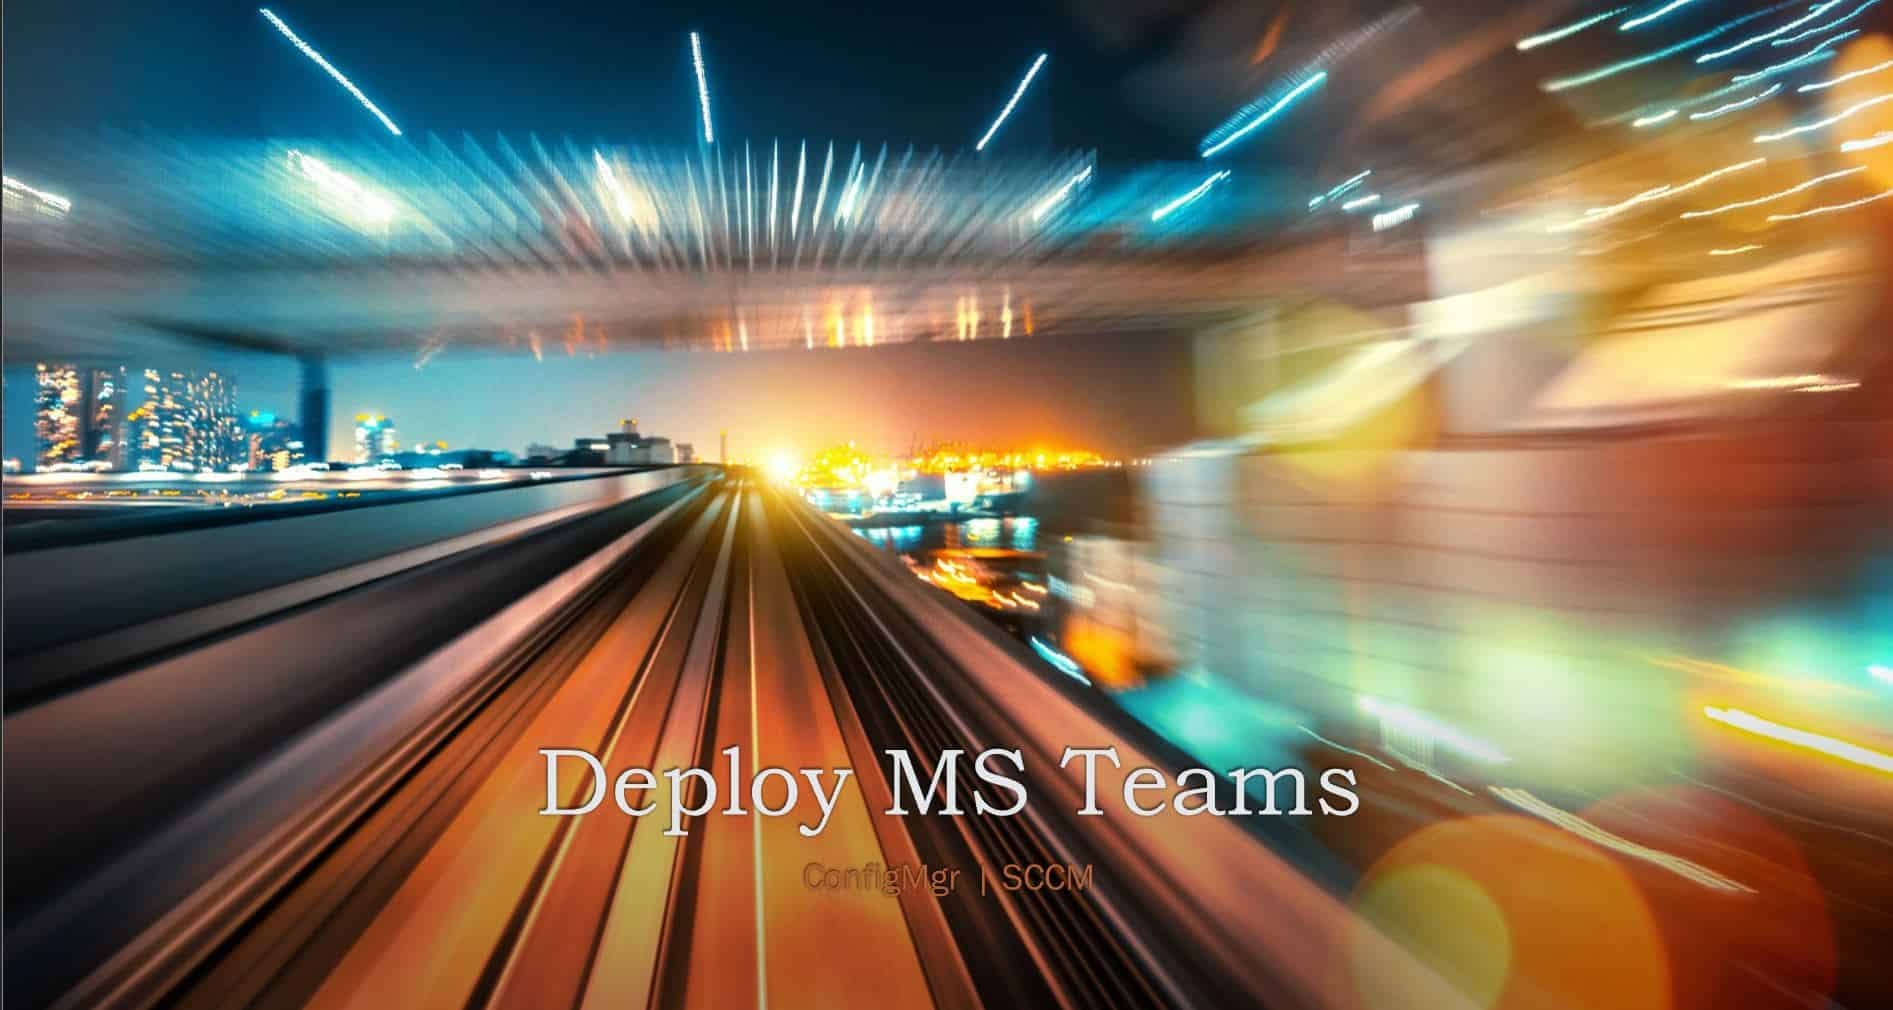 Deploy MS Teams